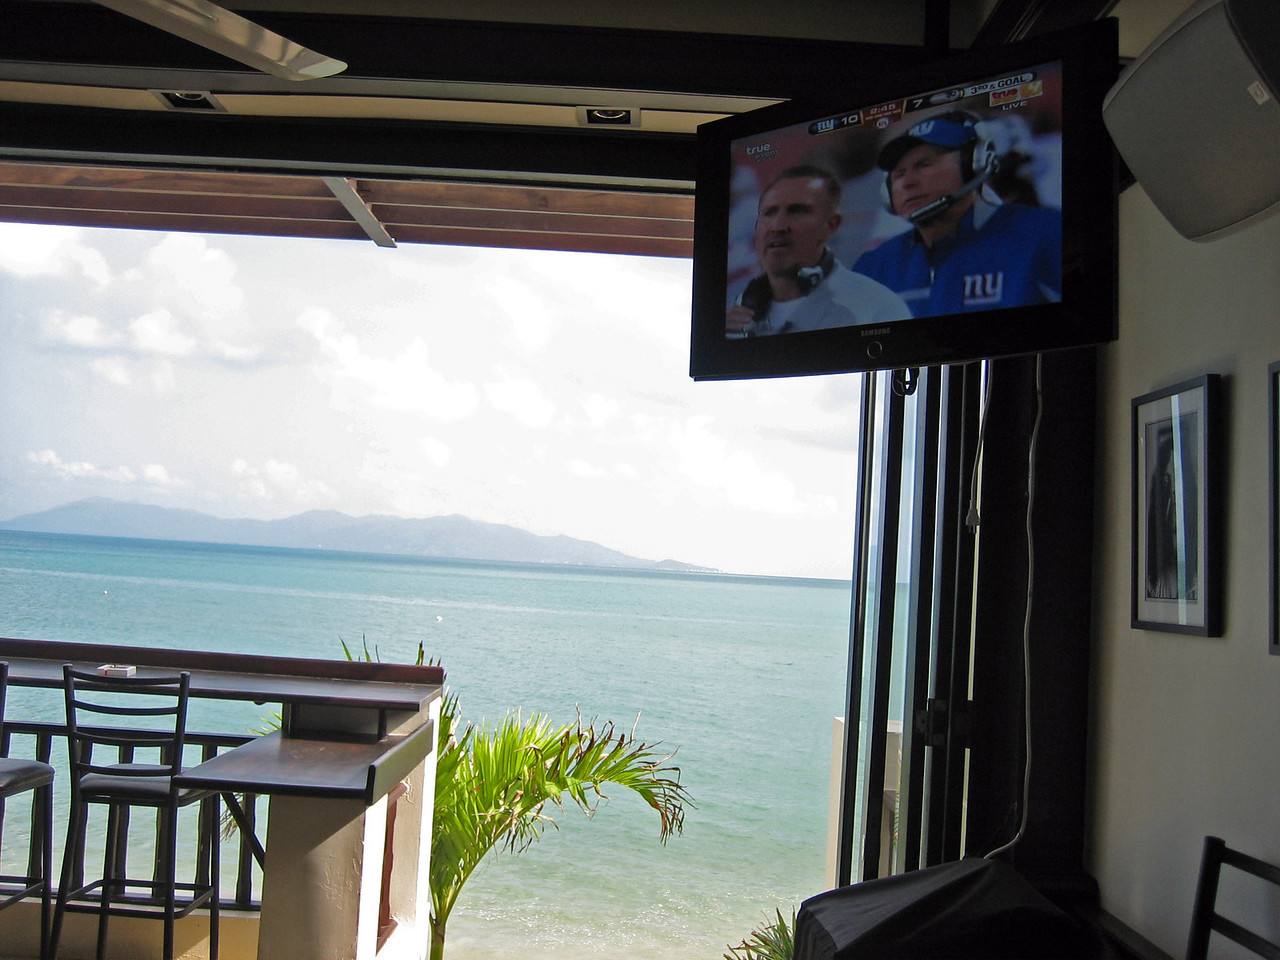 Watched the Superbowl Monday a.m. while having bloodies.  Not a bad spot for a game.